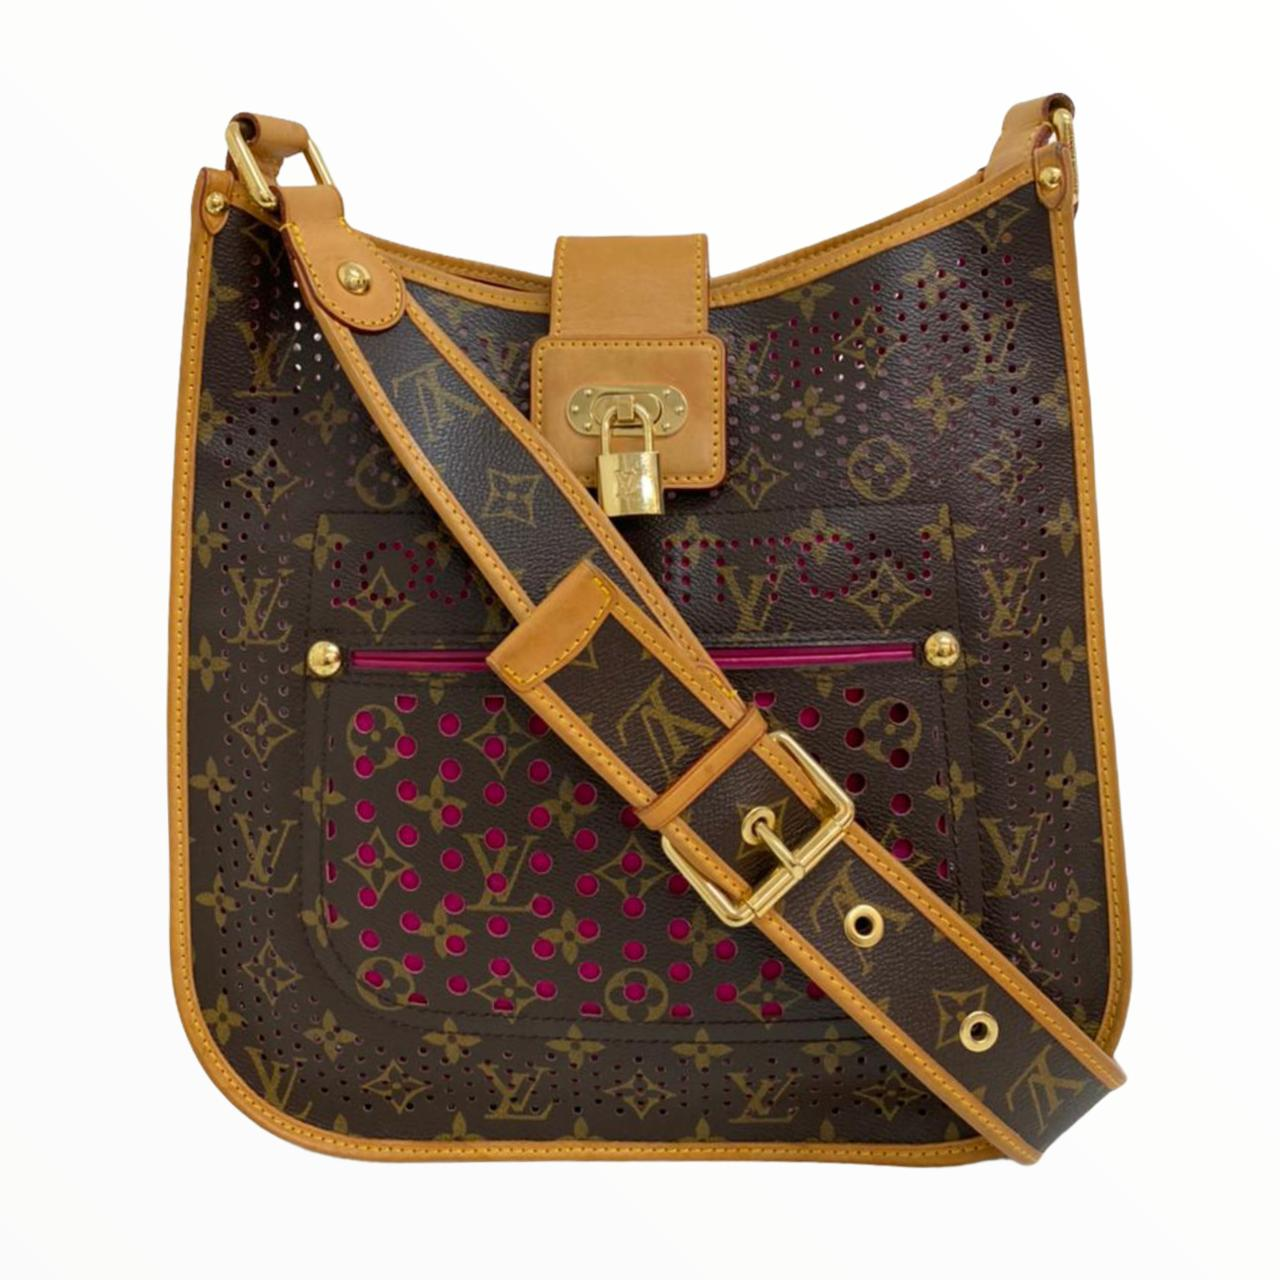 Bolsa Louis Vuitton Limited Edition Perforated Musette